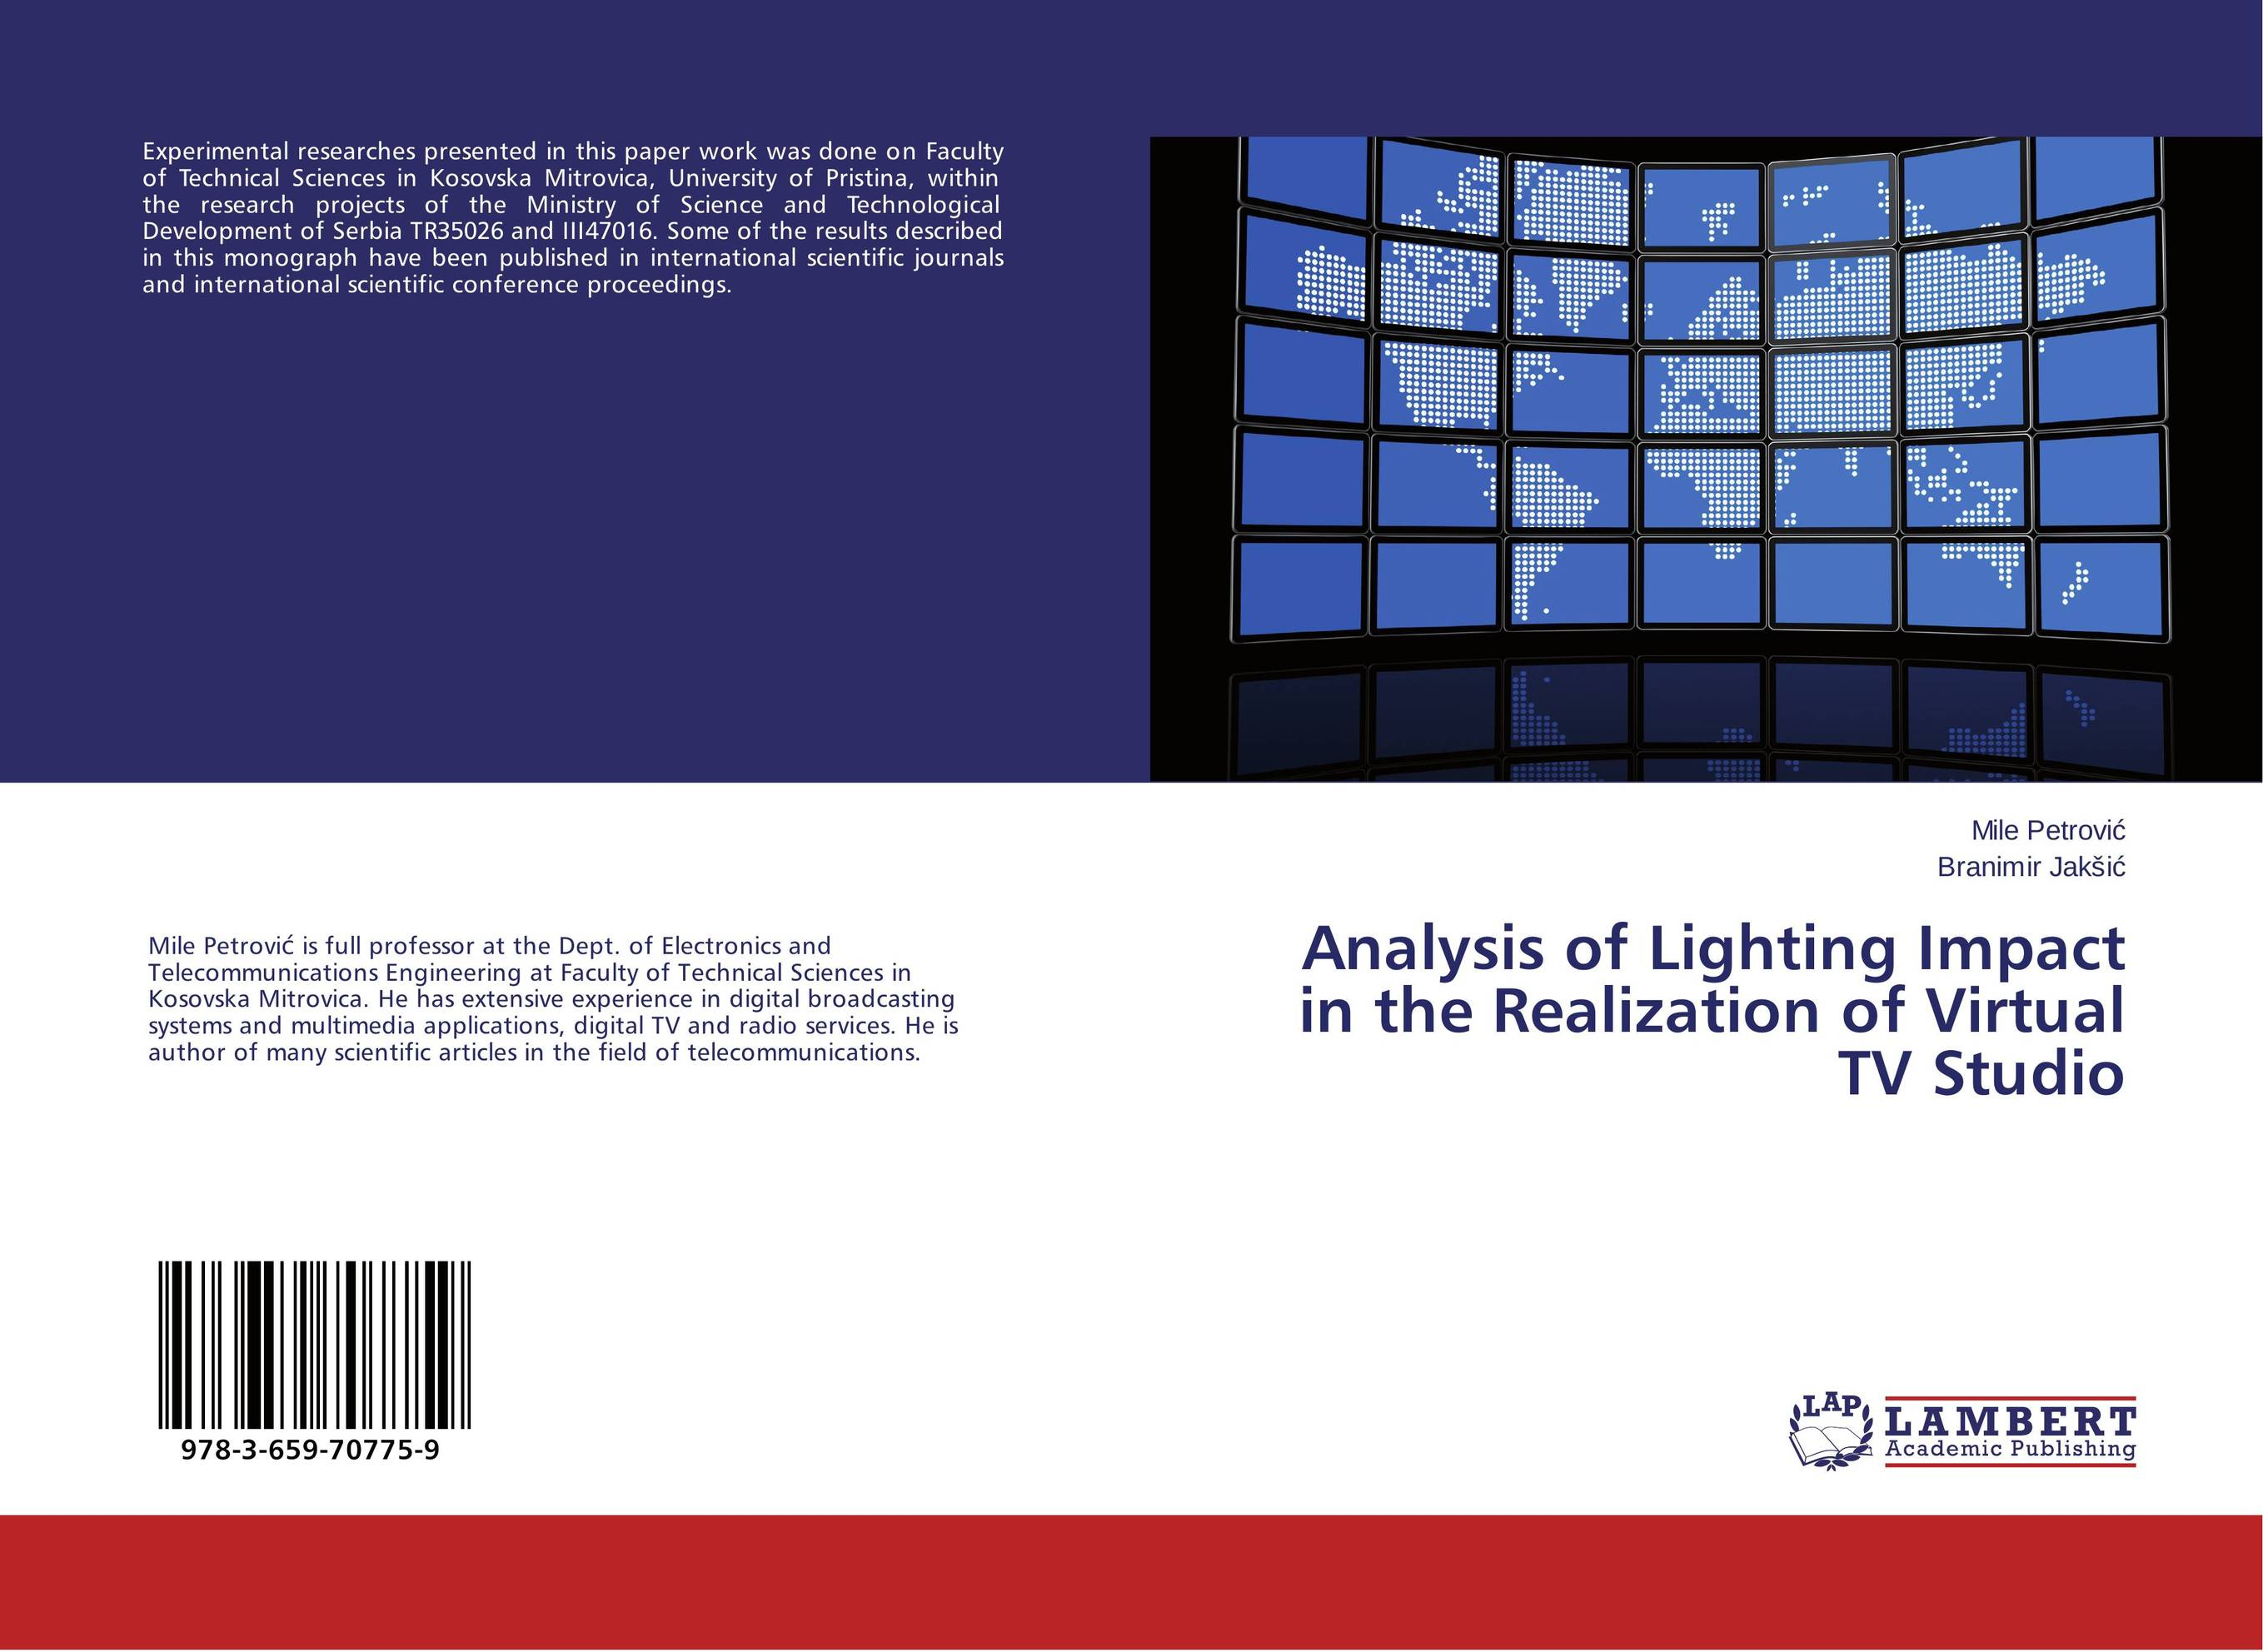 Analysis of Lighting Impact in the Realization of Virtual TV Studio сборник статей advances of science proceedings of articles the international scientific conference czech republic karlovy vary – russia moscow 29–30 march 2016